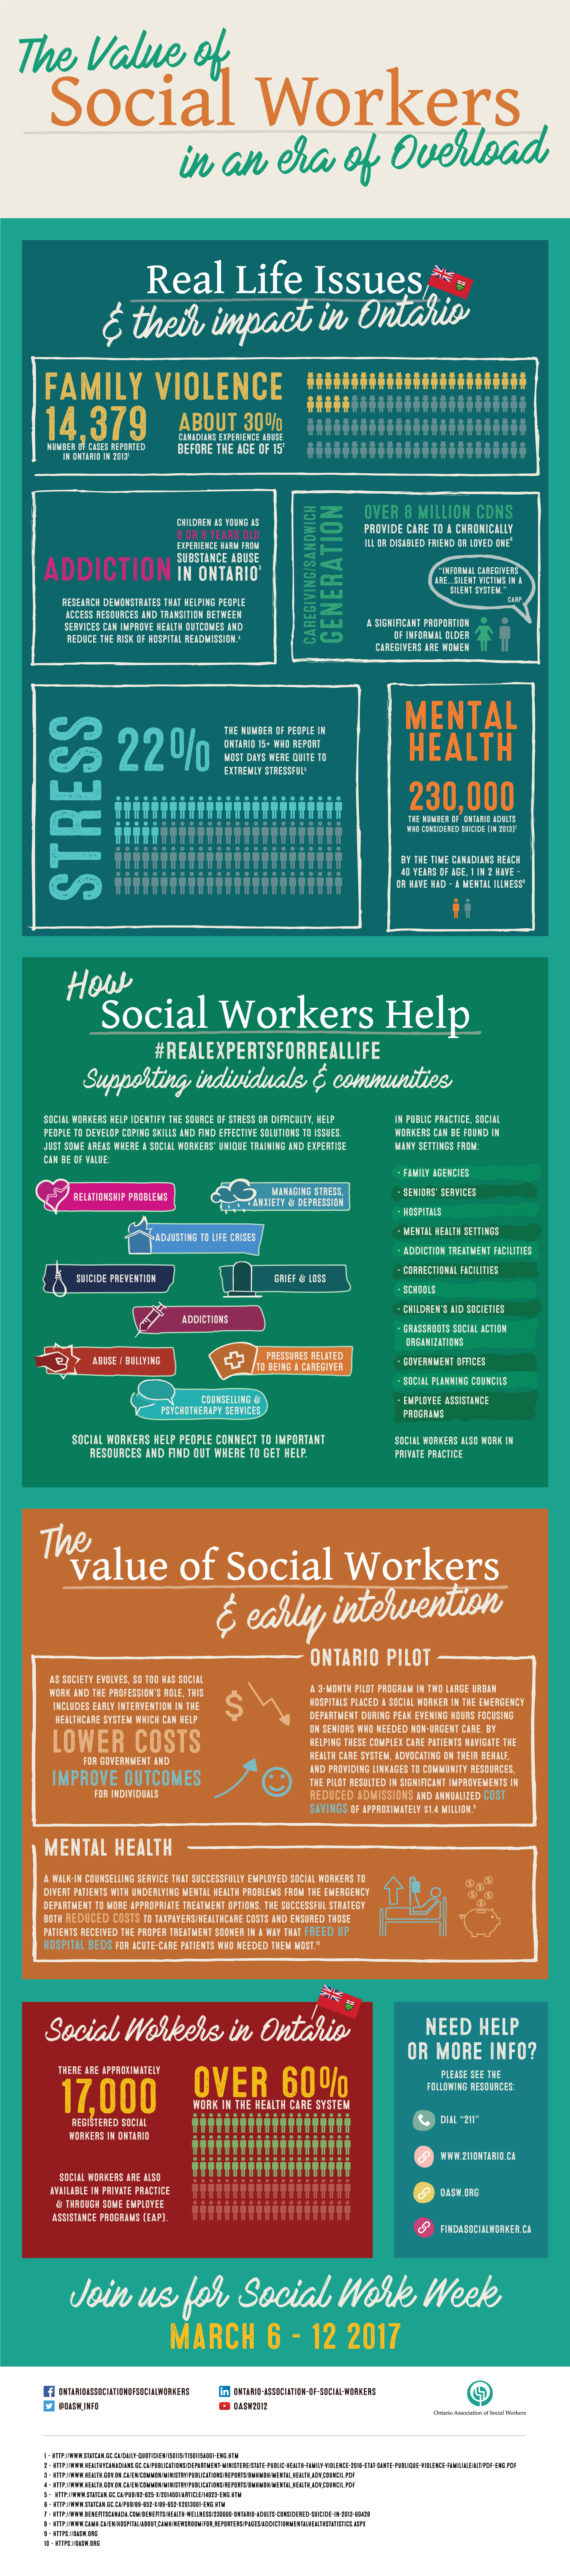 Infographic about the value of social workers